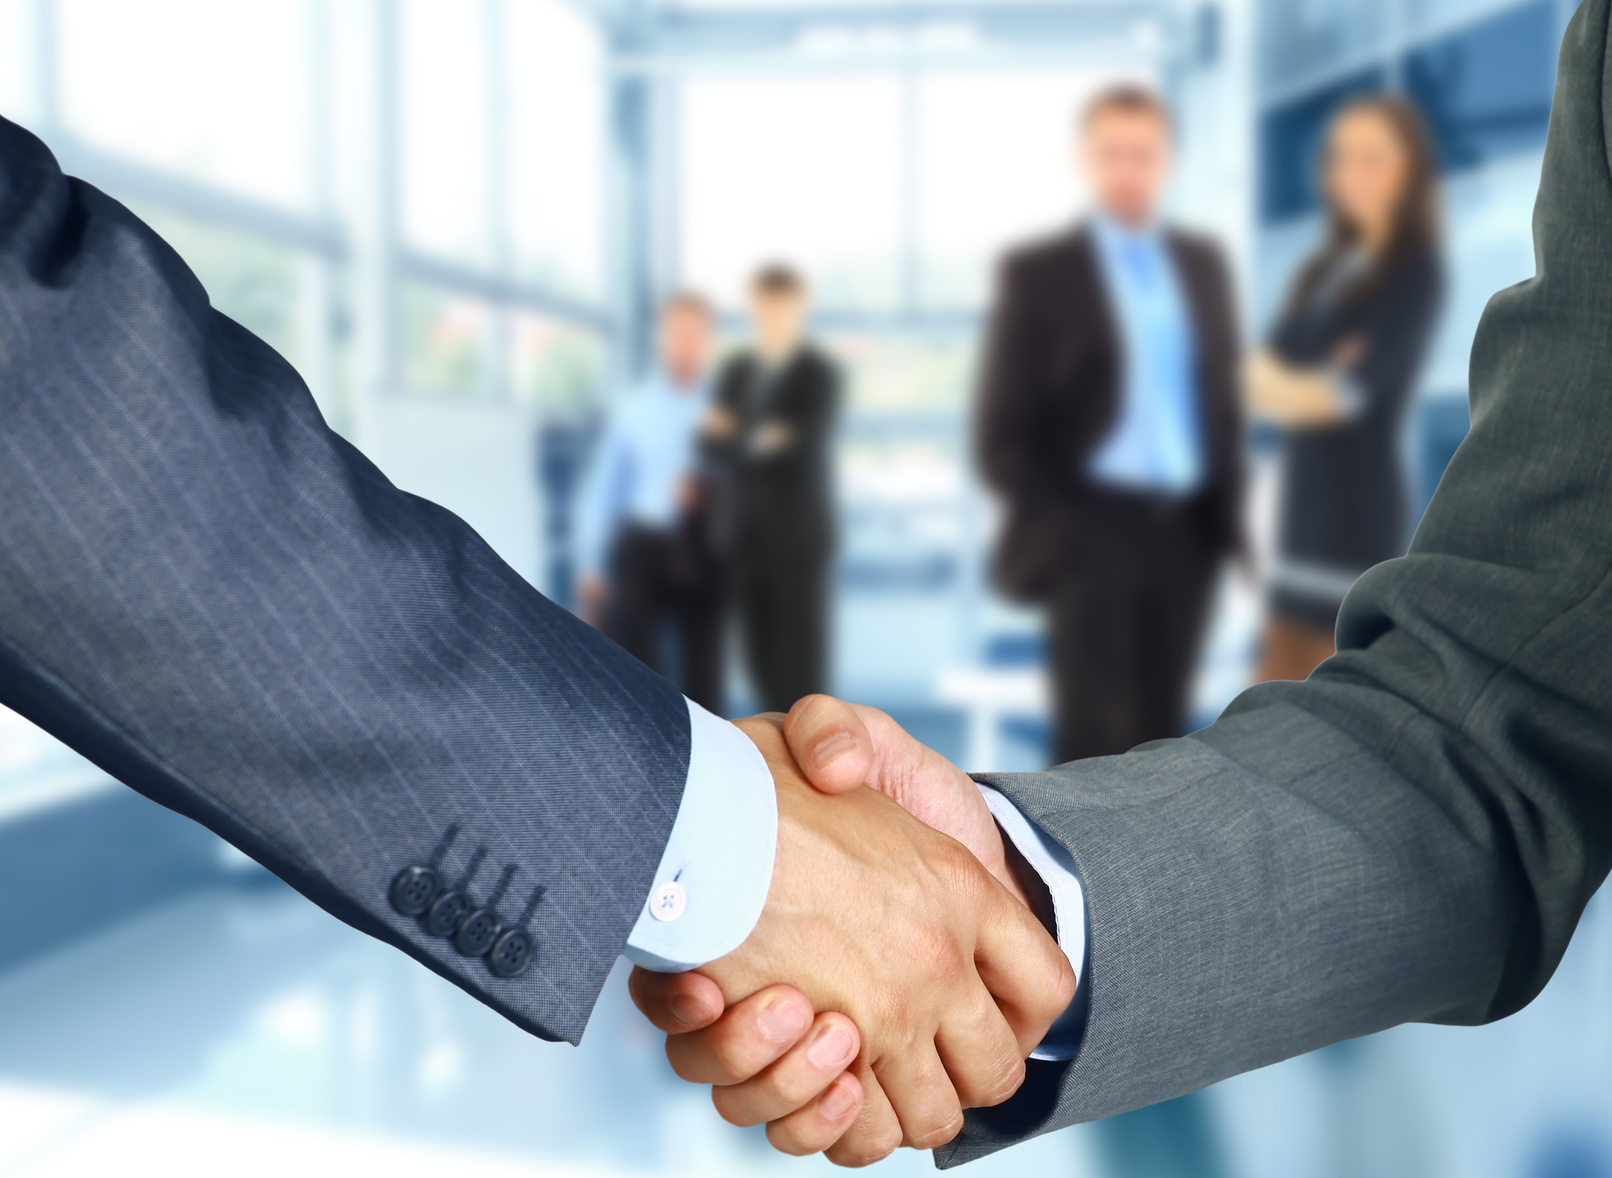 These 4 Traits Make the Perfect Entrepreneurial Partner